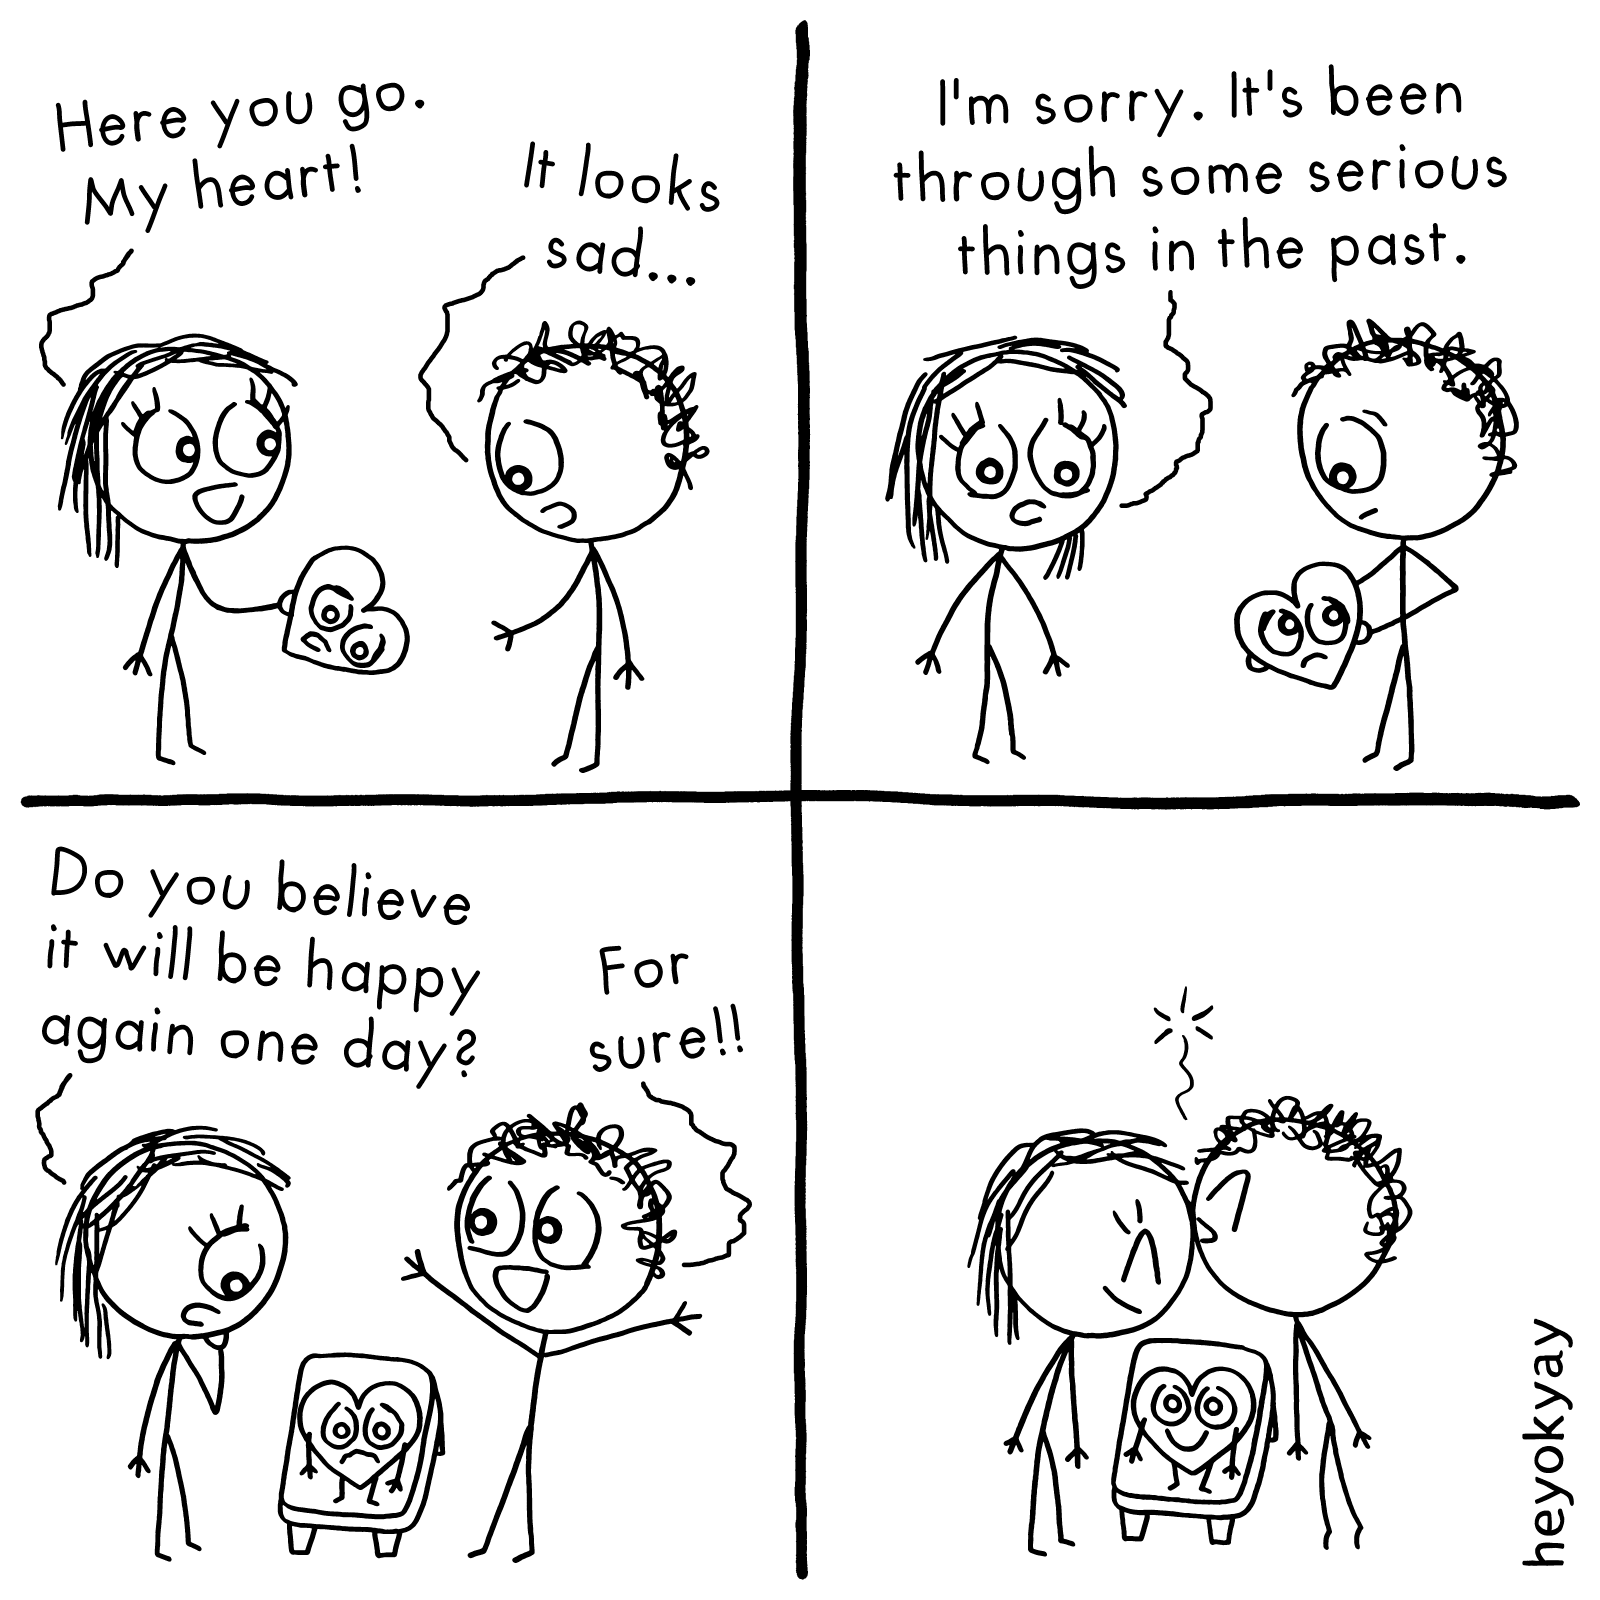 Here you go. My heart! It looks sad. I'm sorry. It's been through some serious things in the past. Do you believe it will be happy again one day? For sure! Heart heyokyay comic